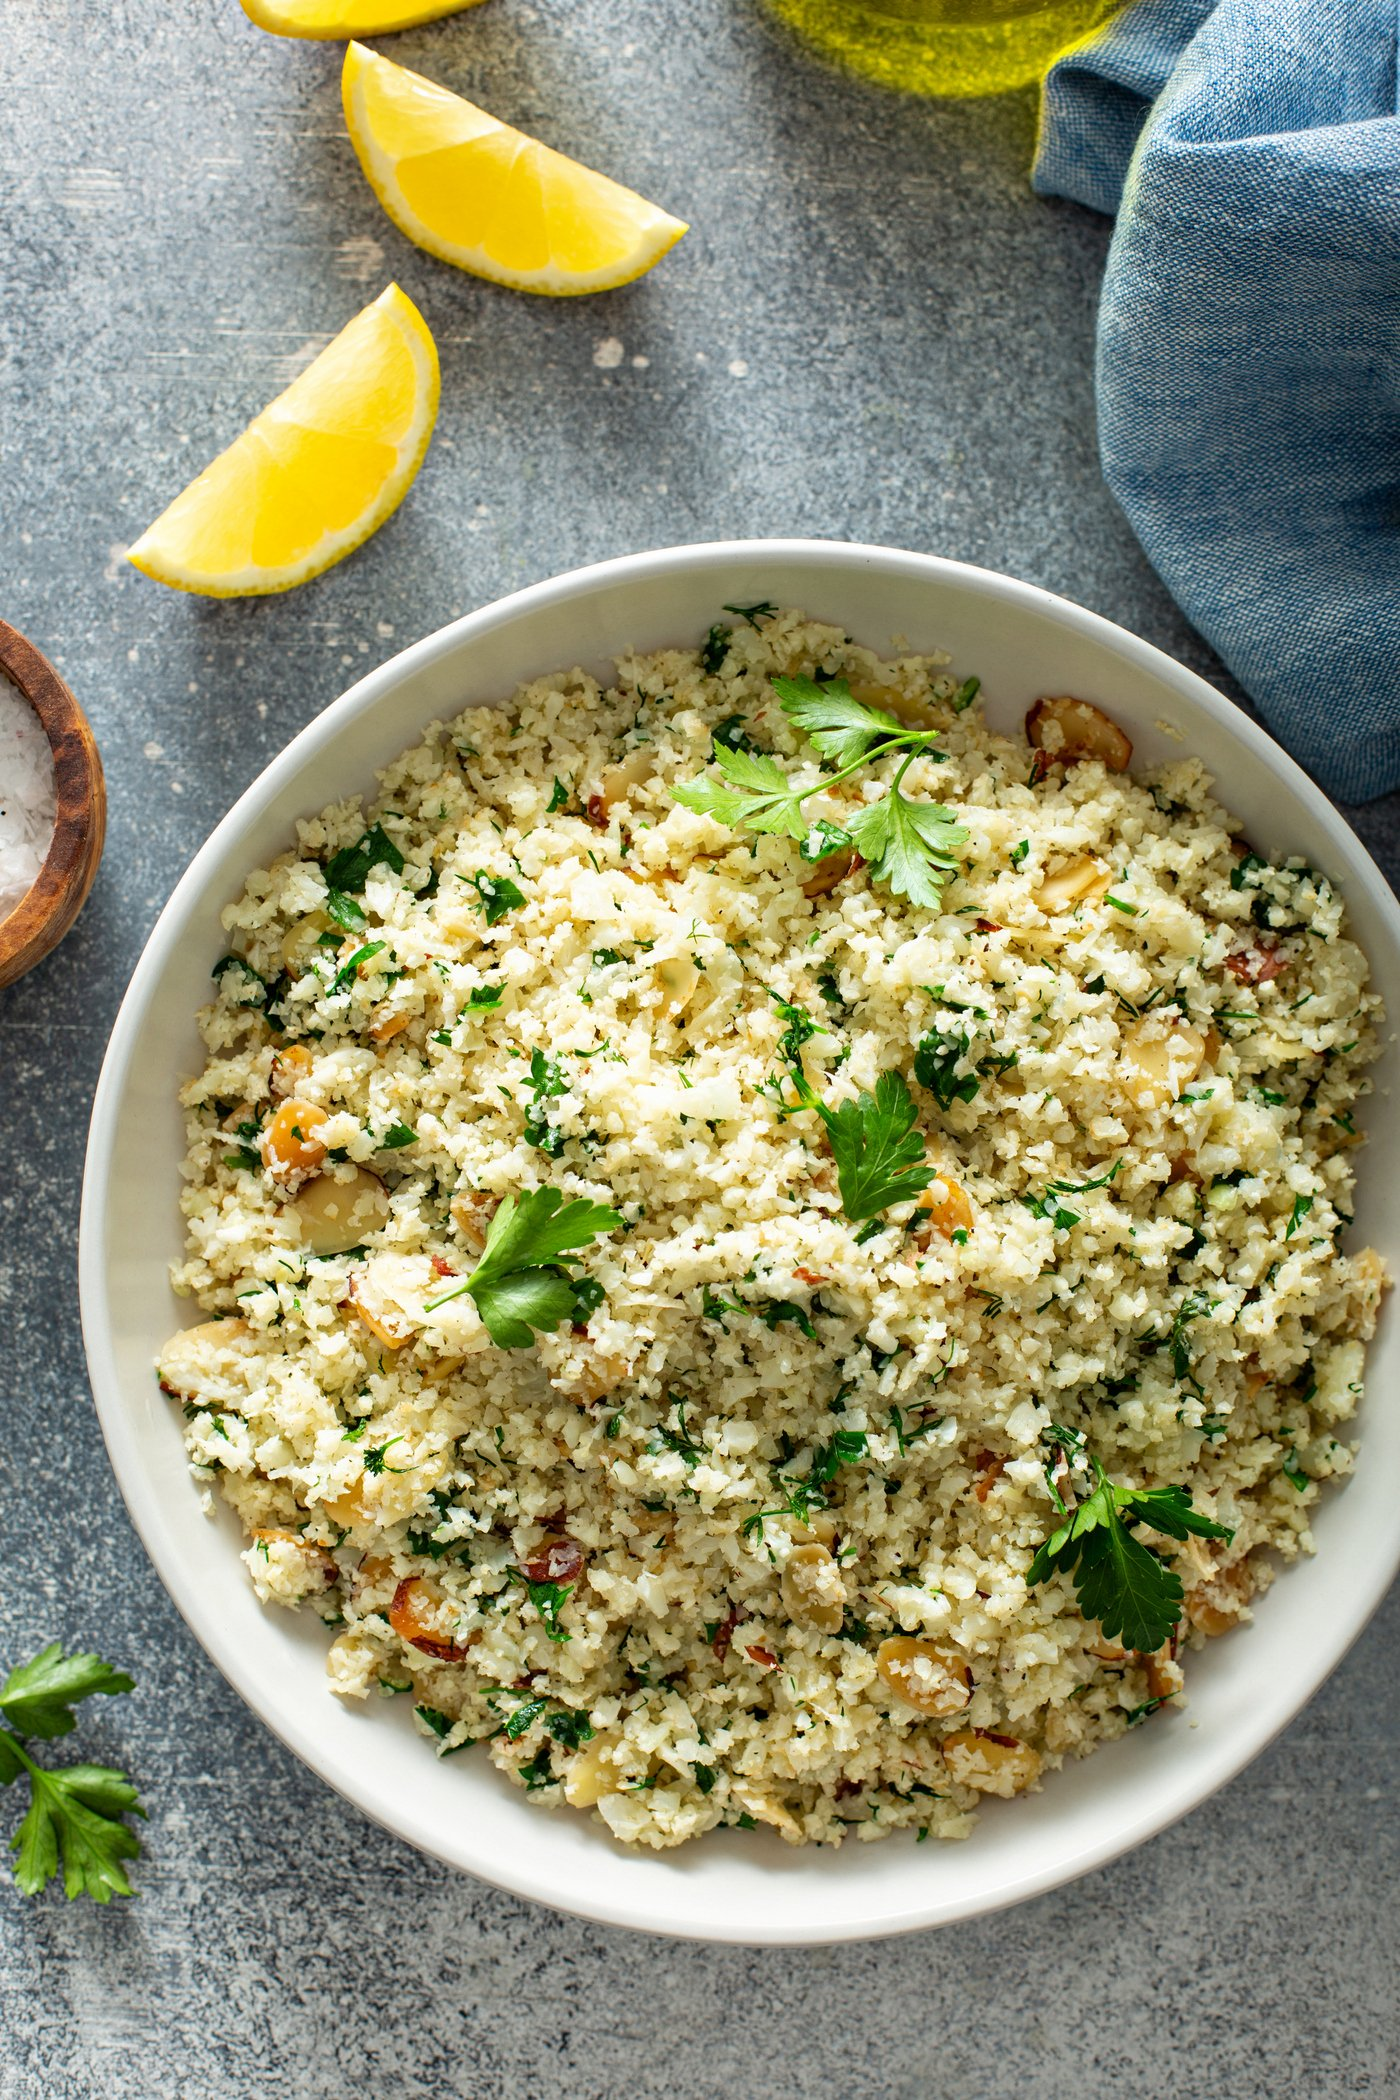 A white serving bowl of garlic herb cauliflower rice. It is topped with fresh parsley leaves. There are lemon wedges, a small container of salt and a blue napkin in the background.